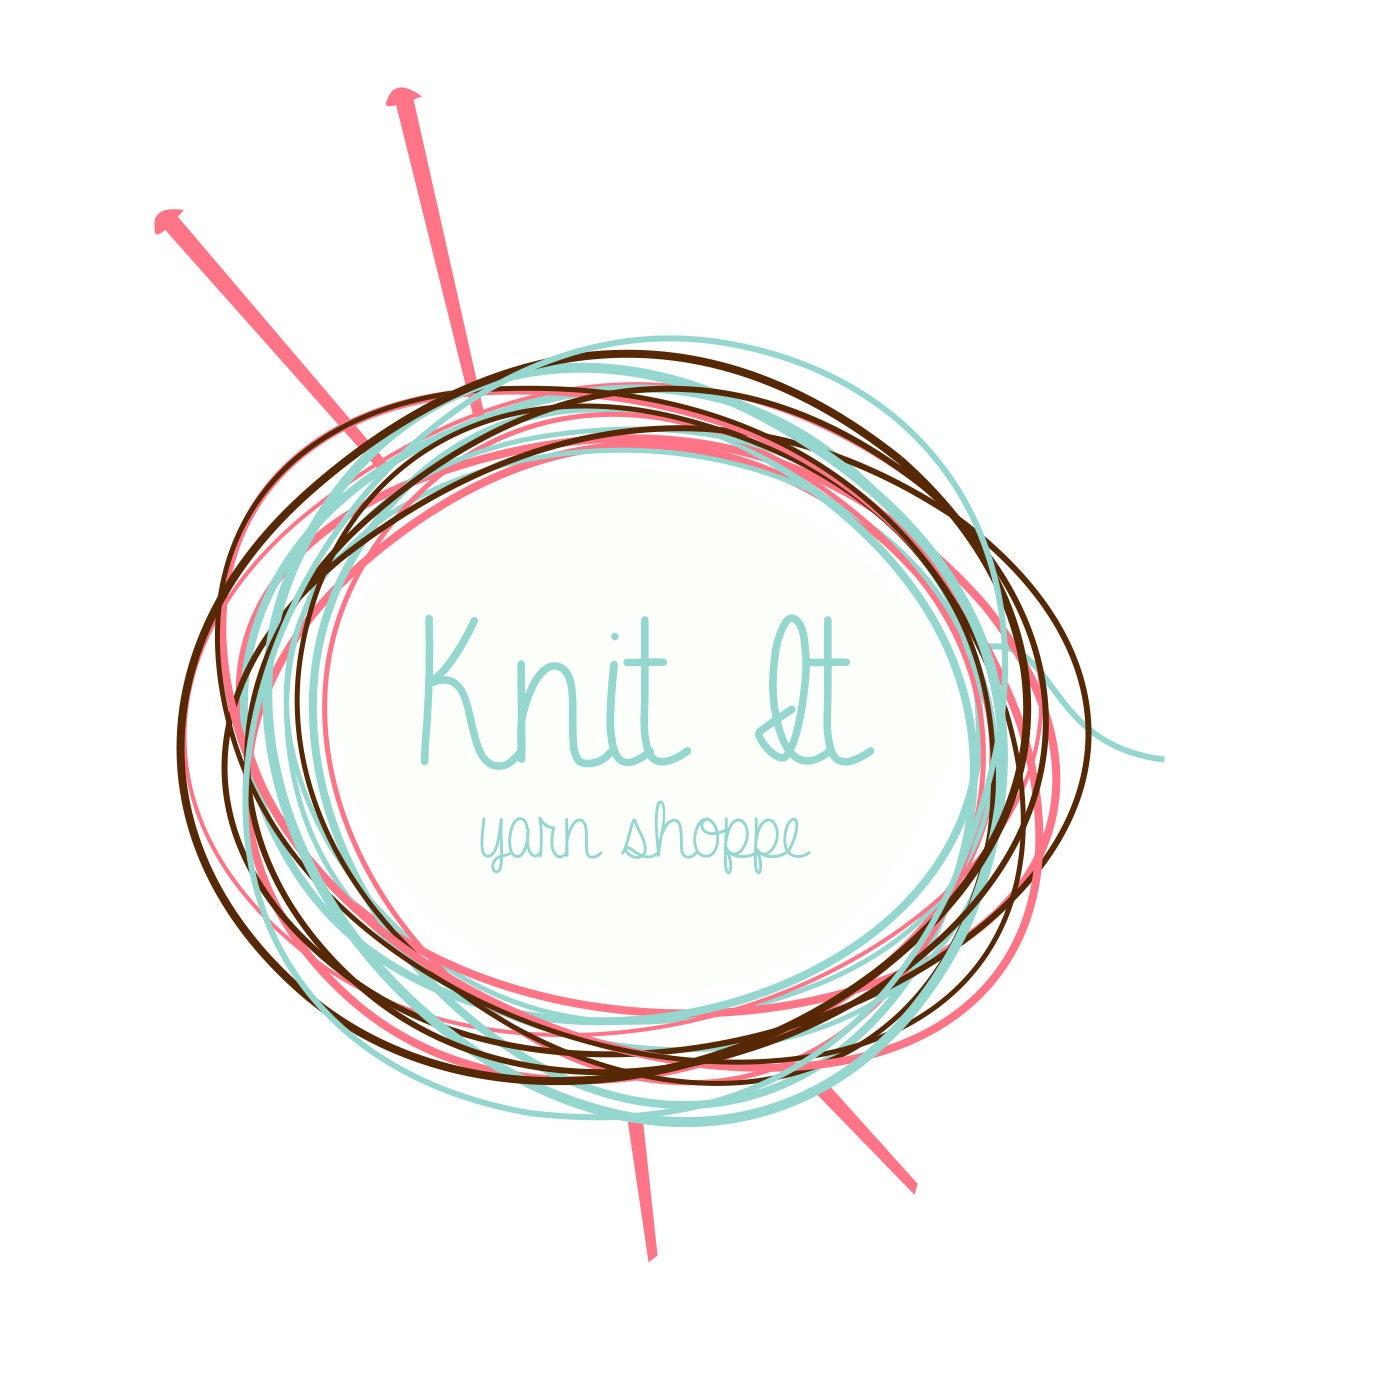 Knitting Club Logo : Knitting logo pixshark images galleries with a